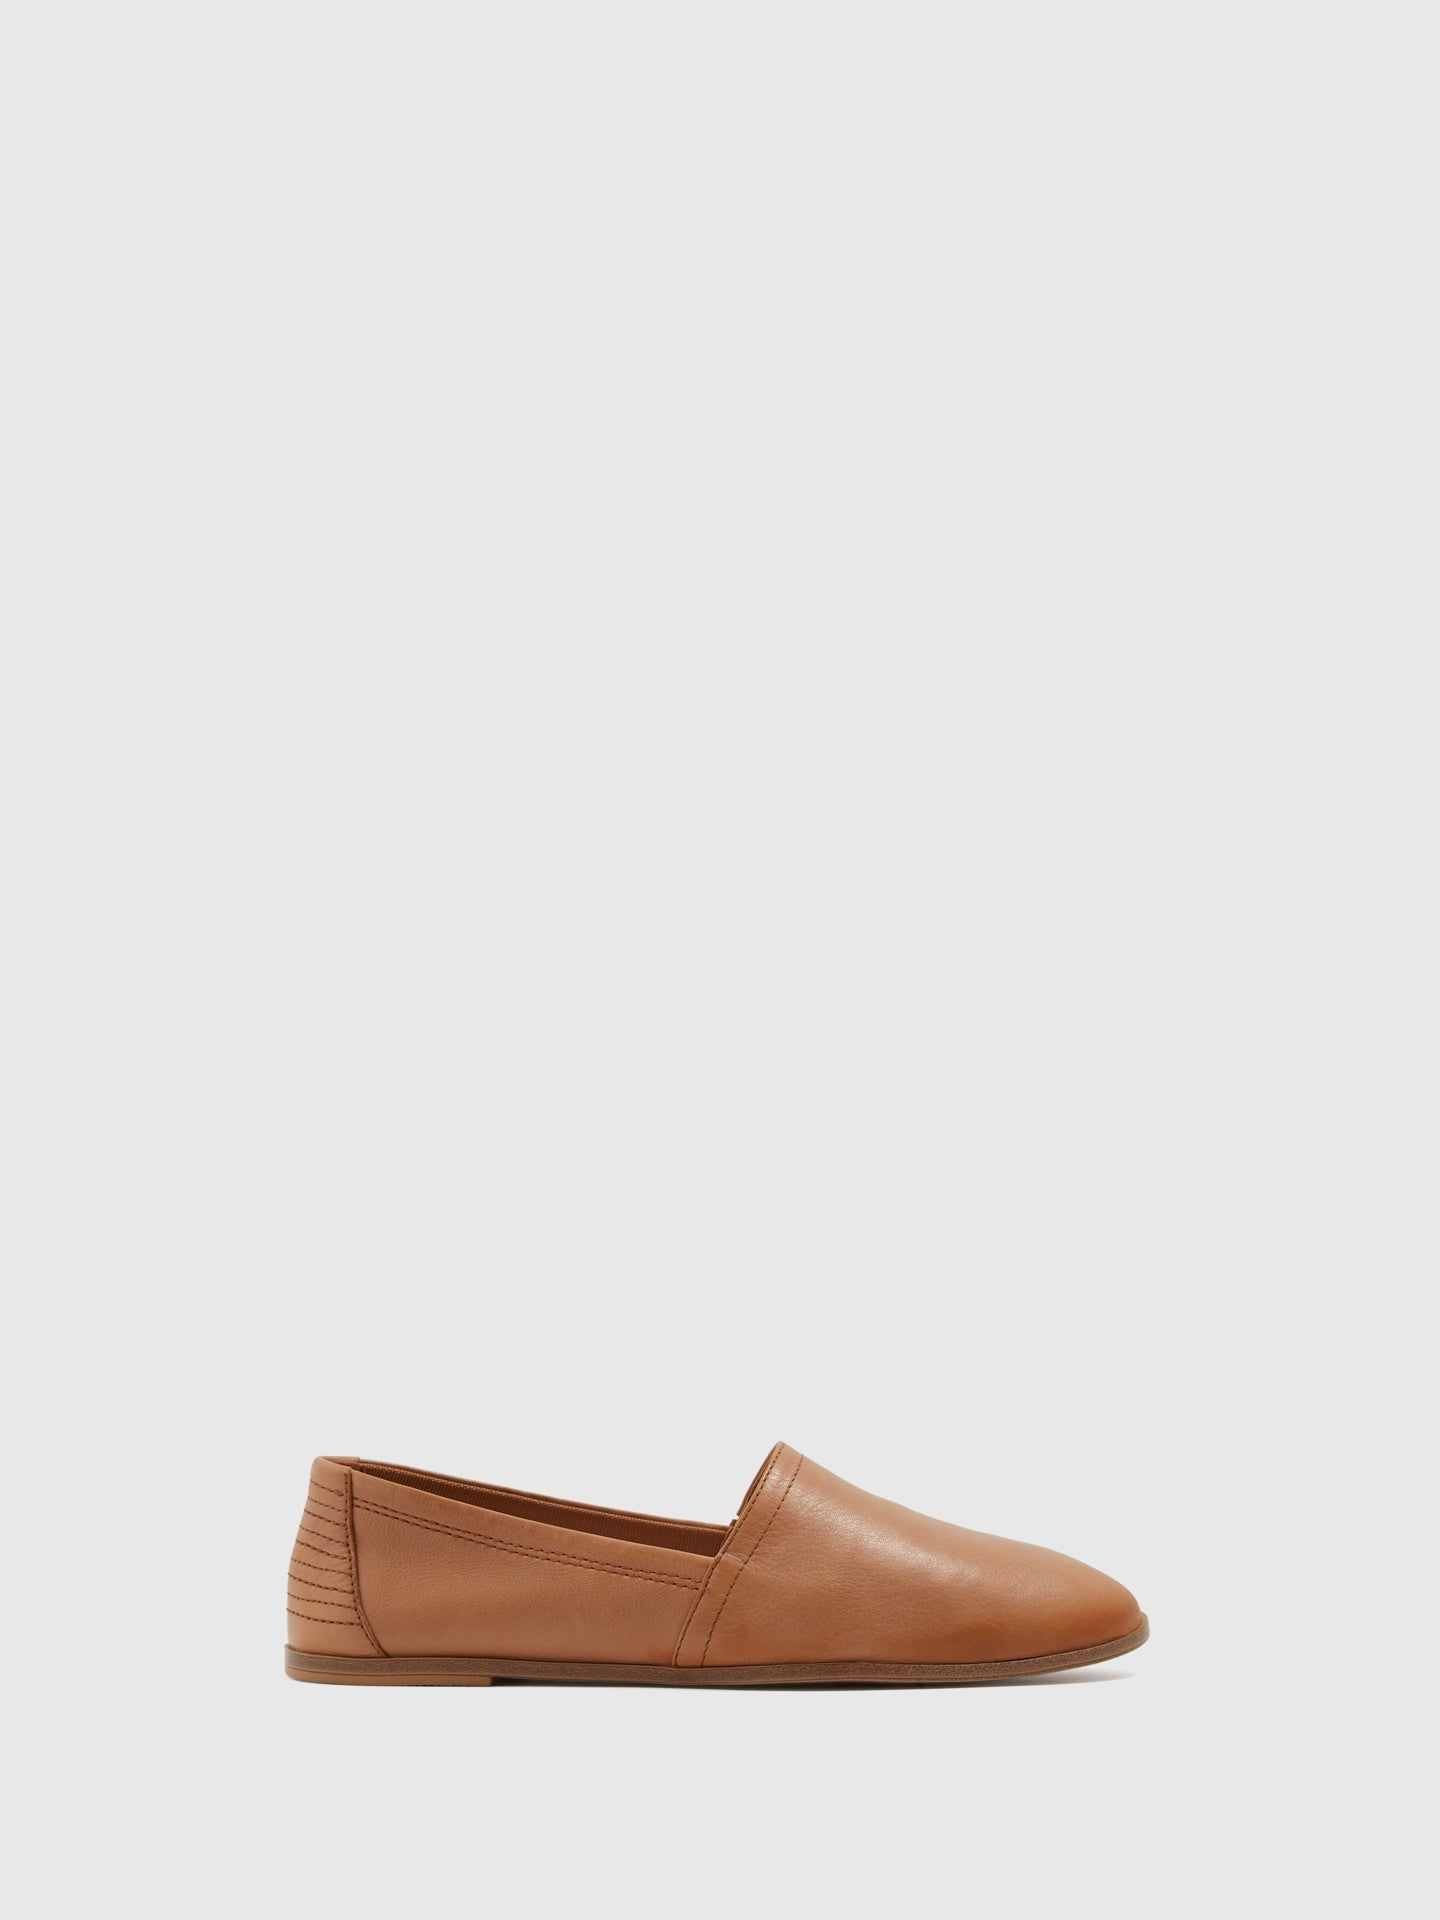 Aldo Camel Pointed Toe Ballerinas